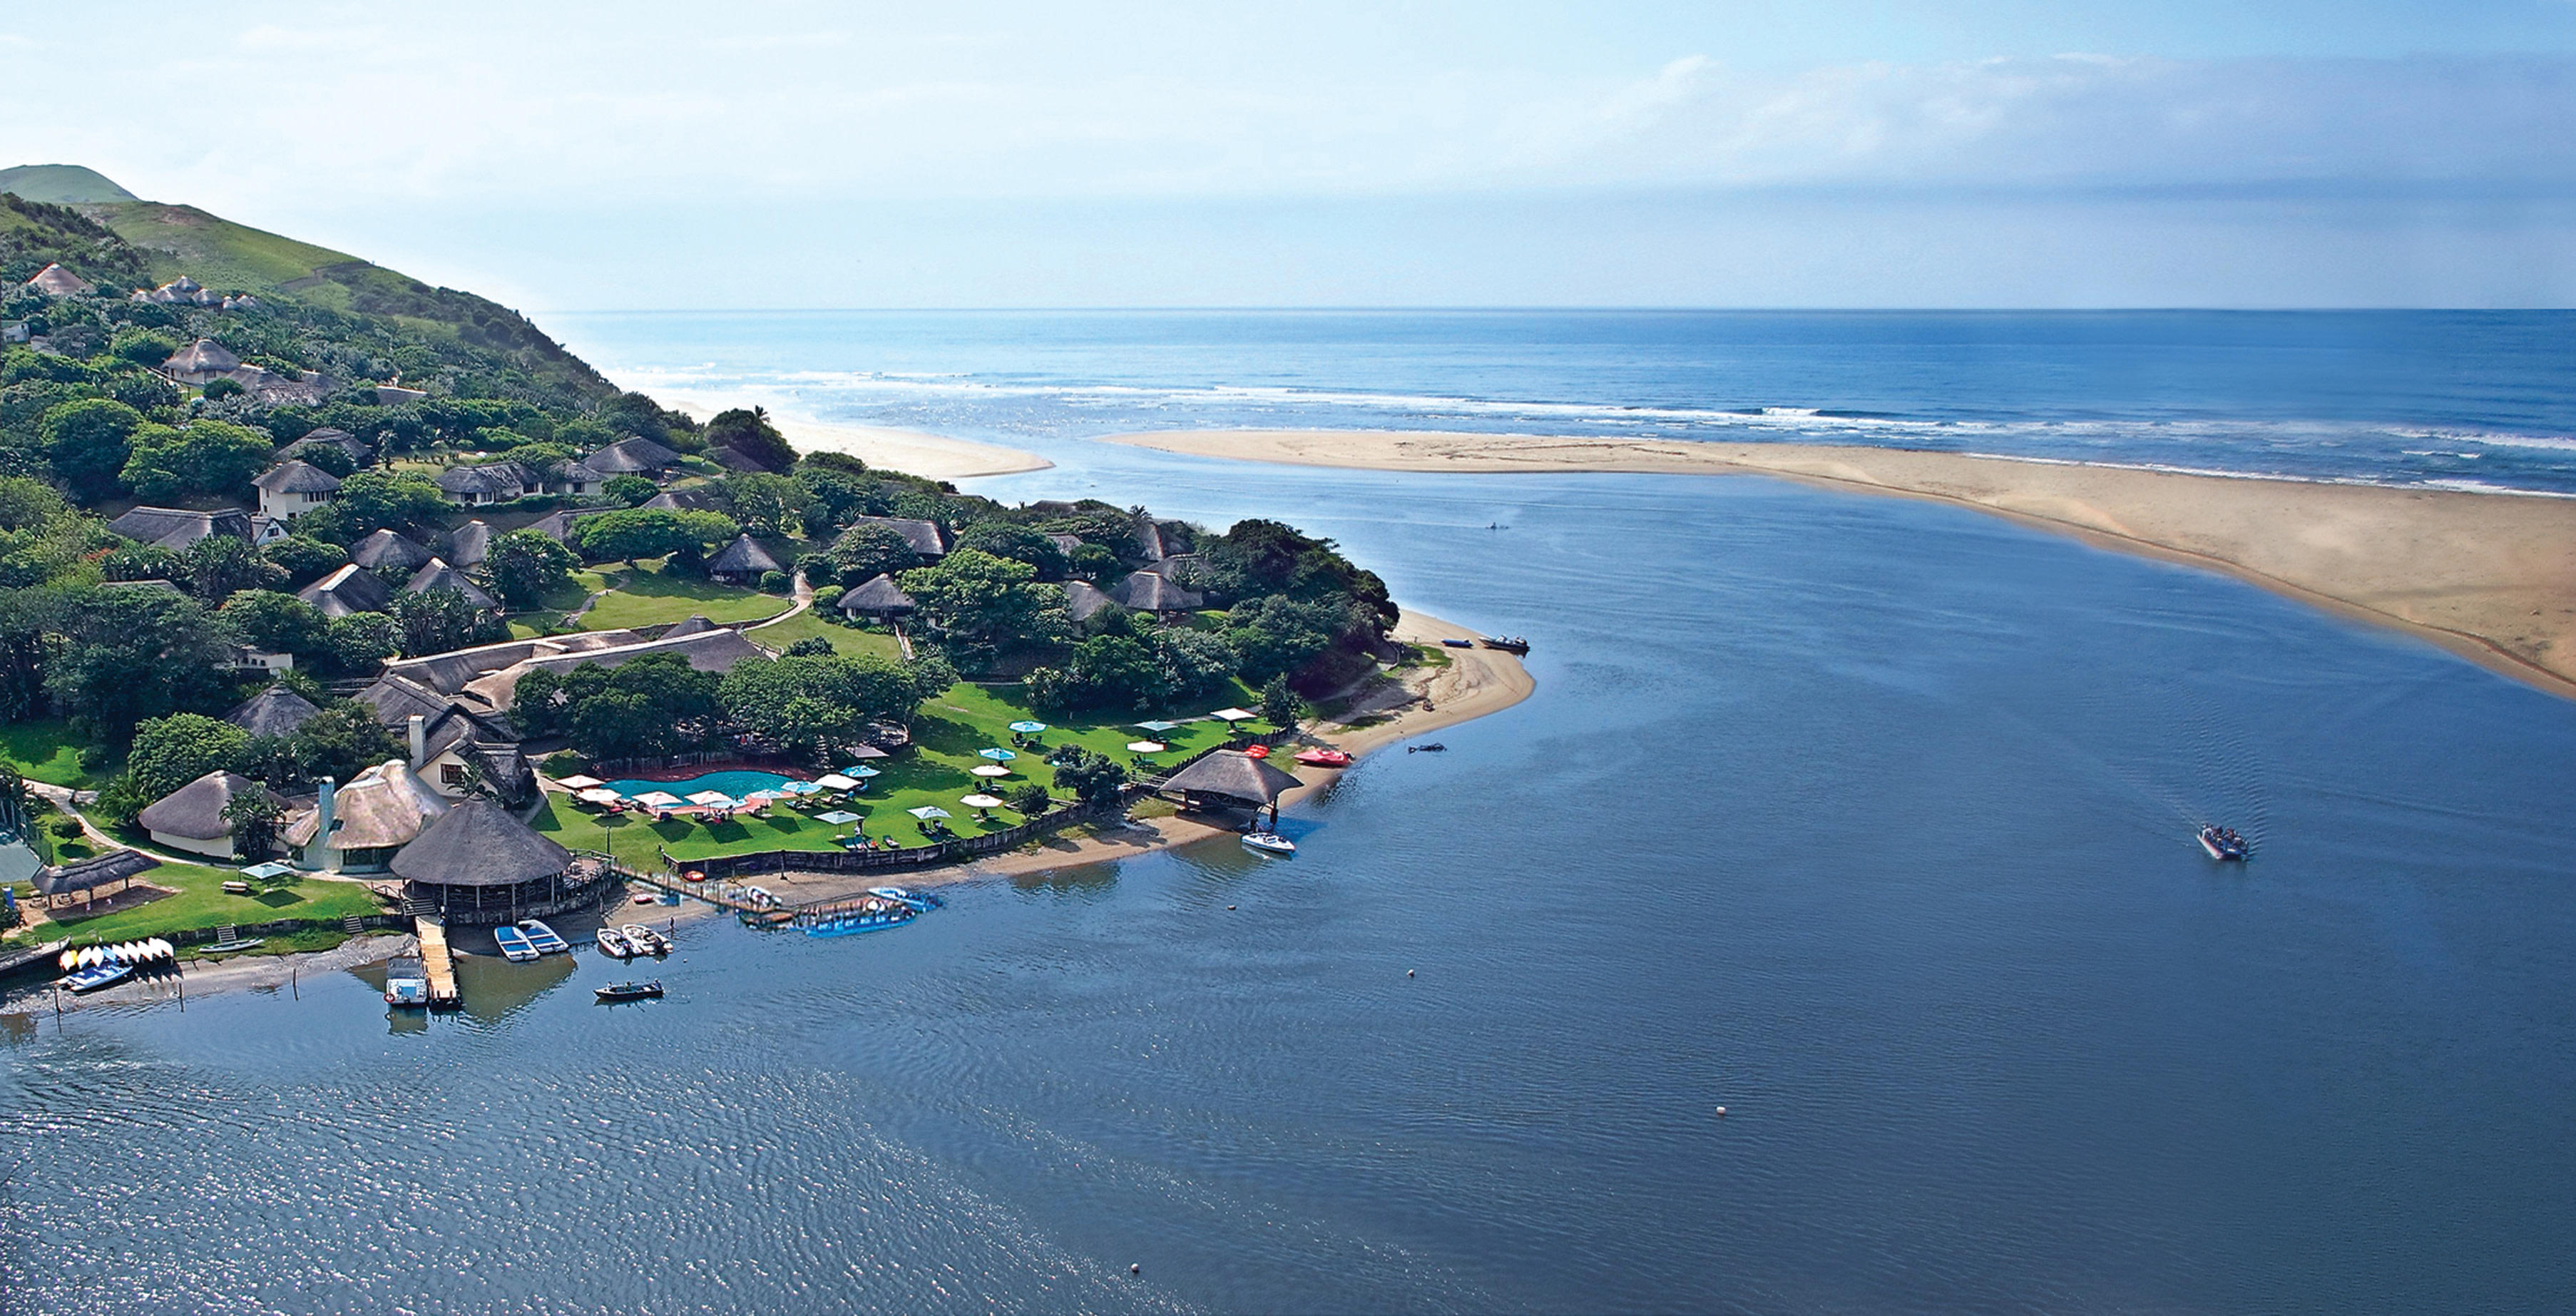 Aerial view of the Umngazi River Bungalows - Eastern Wild Coast, South Africa